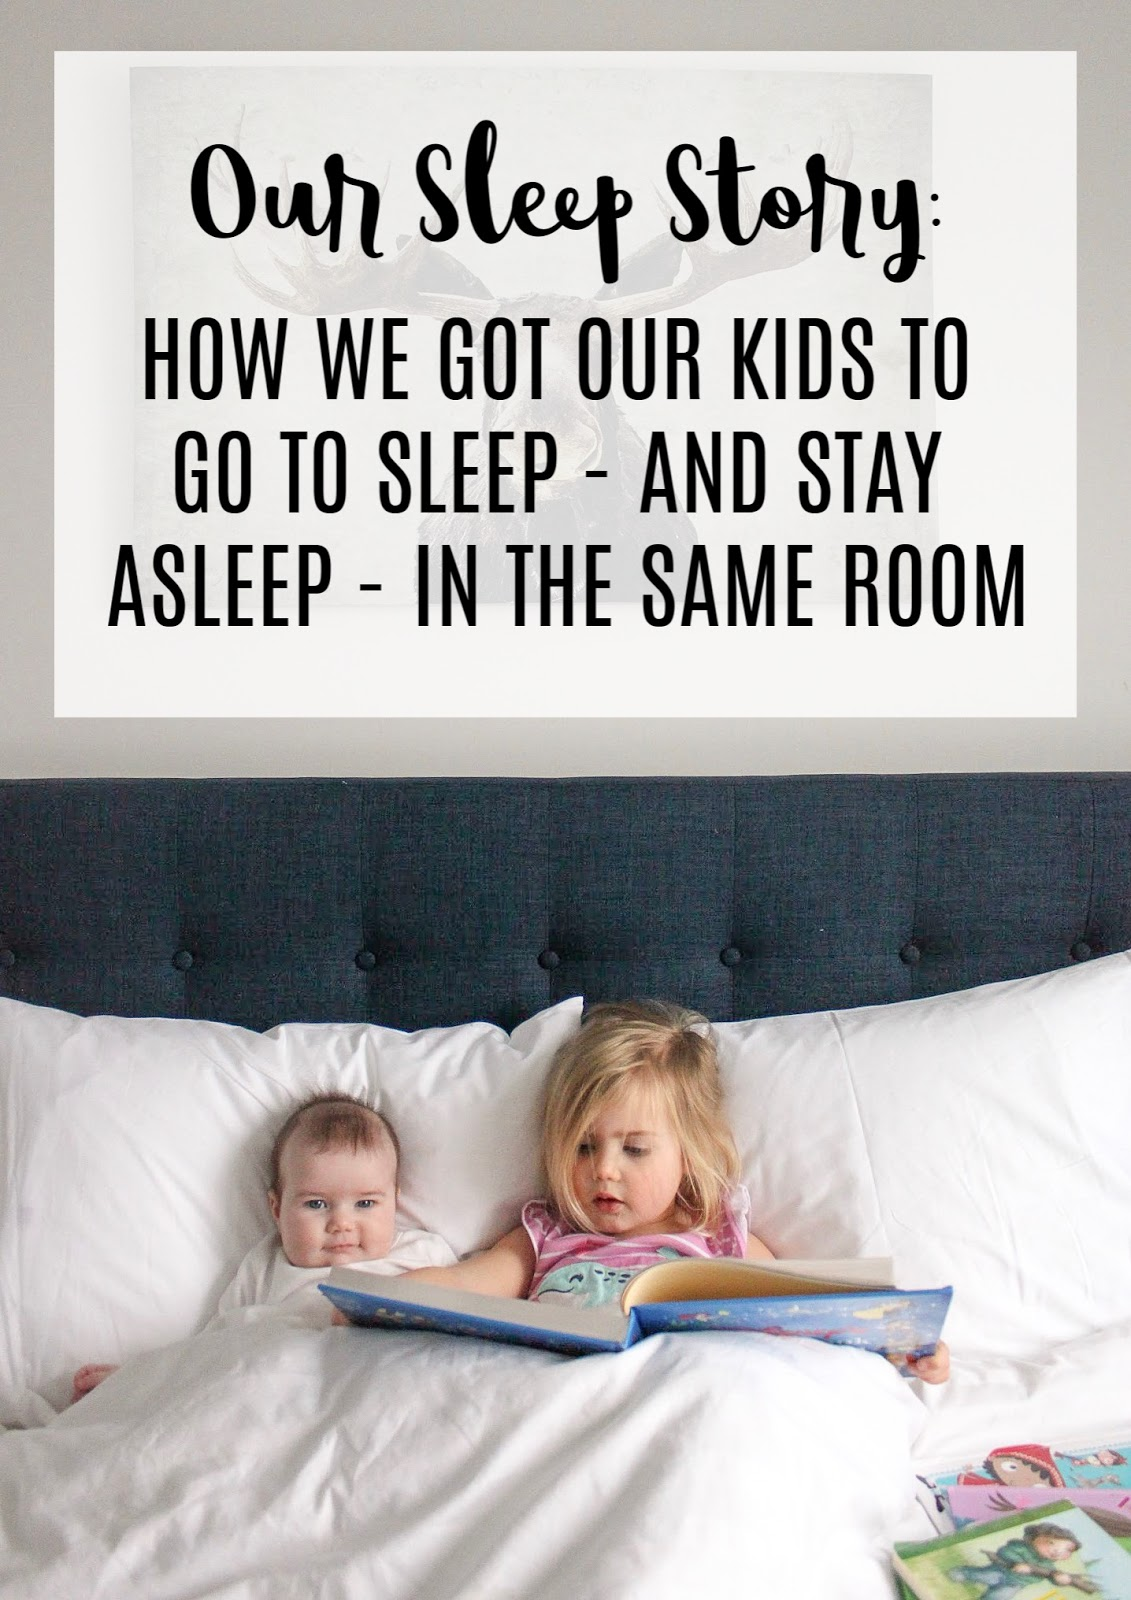 Our Sleep Story: How We Got Our Kids to Go to Sleep - and Stay Asleep - in the Same Room